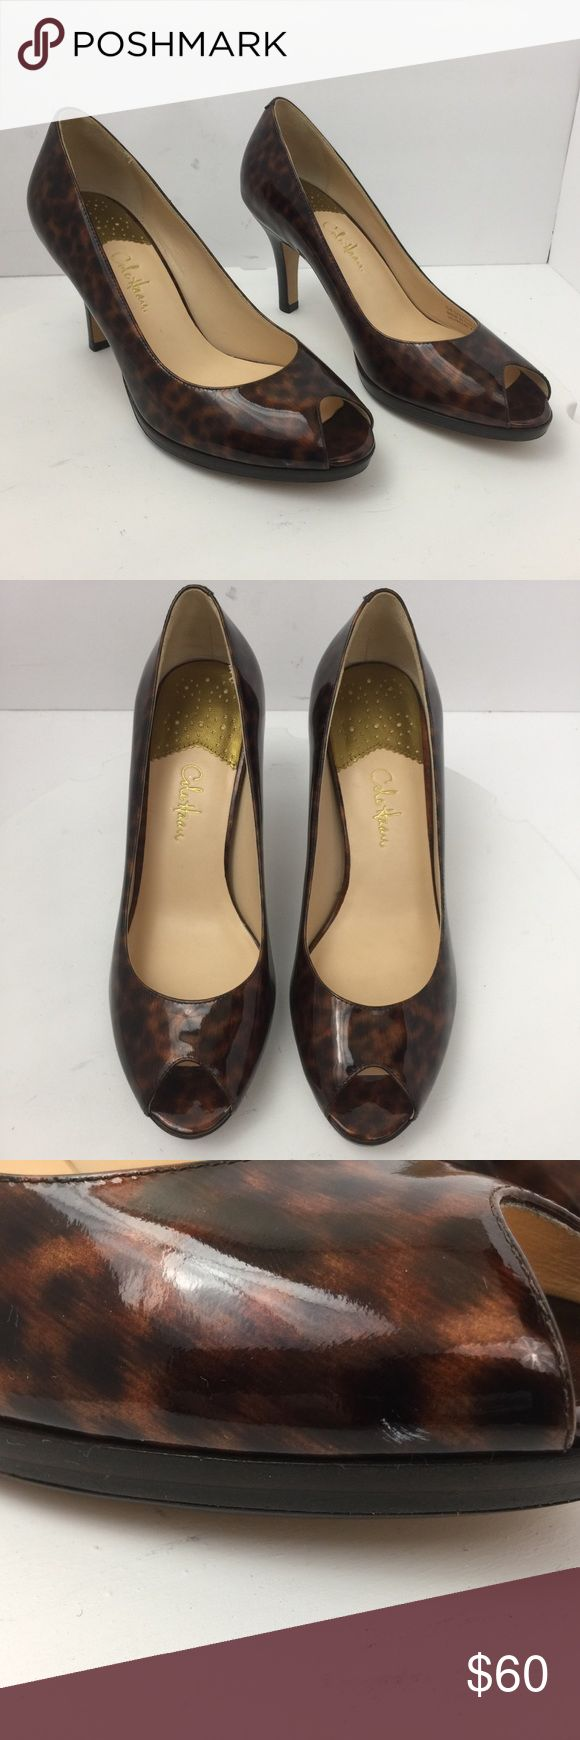 Cole Haan Air Leopard Print Women's Heels Pumps Cole Haan Air Leopard Print Women's Heels Pumps Peep Toe Dress Shoes Size 8B. See pics for Condition. Heel measures 3 1/2 inches. Cole Haan Shoes Heels